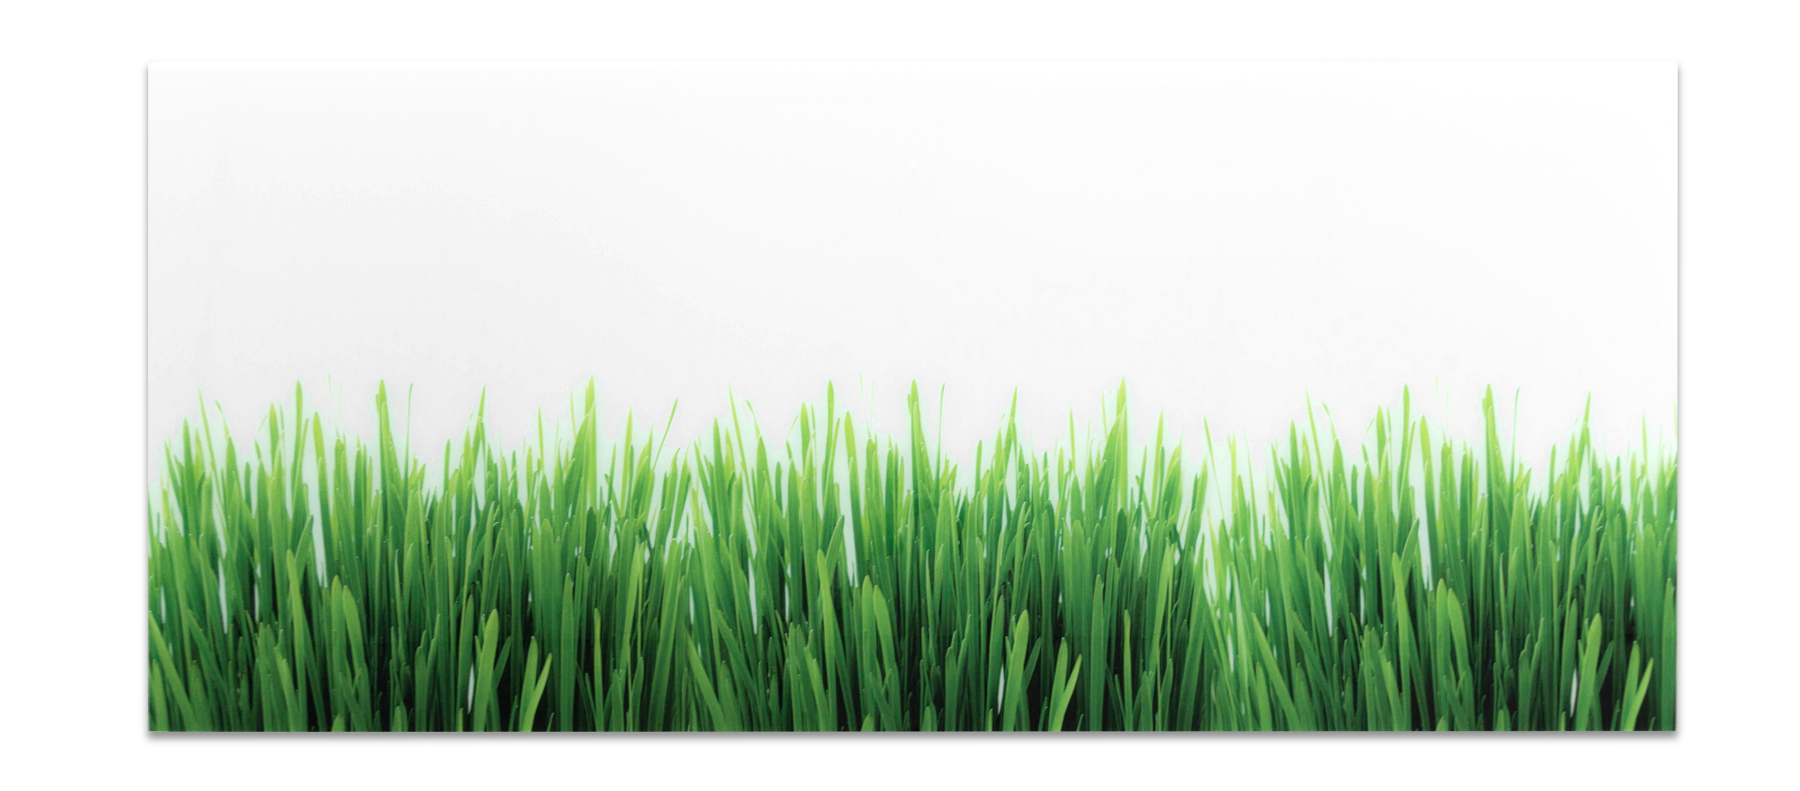 Acrylic Splashback Grass Colour Example for Kitchen